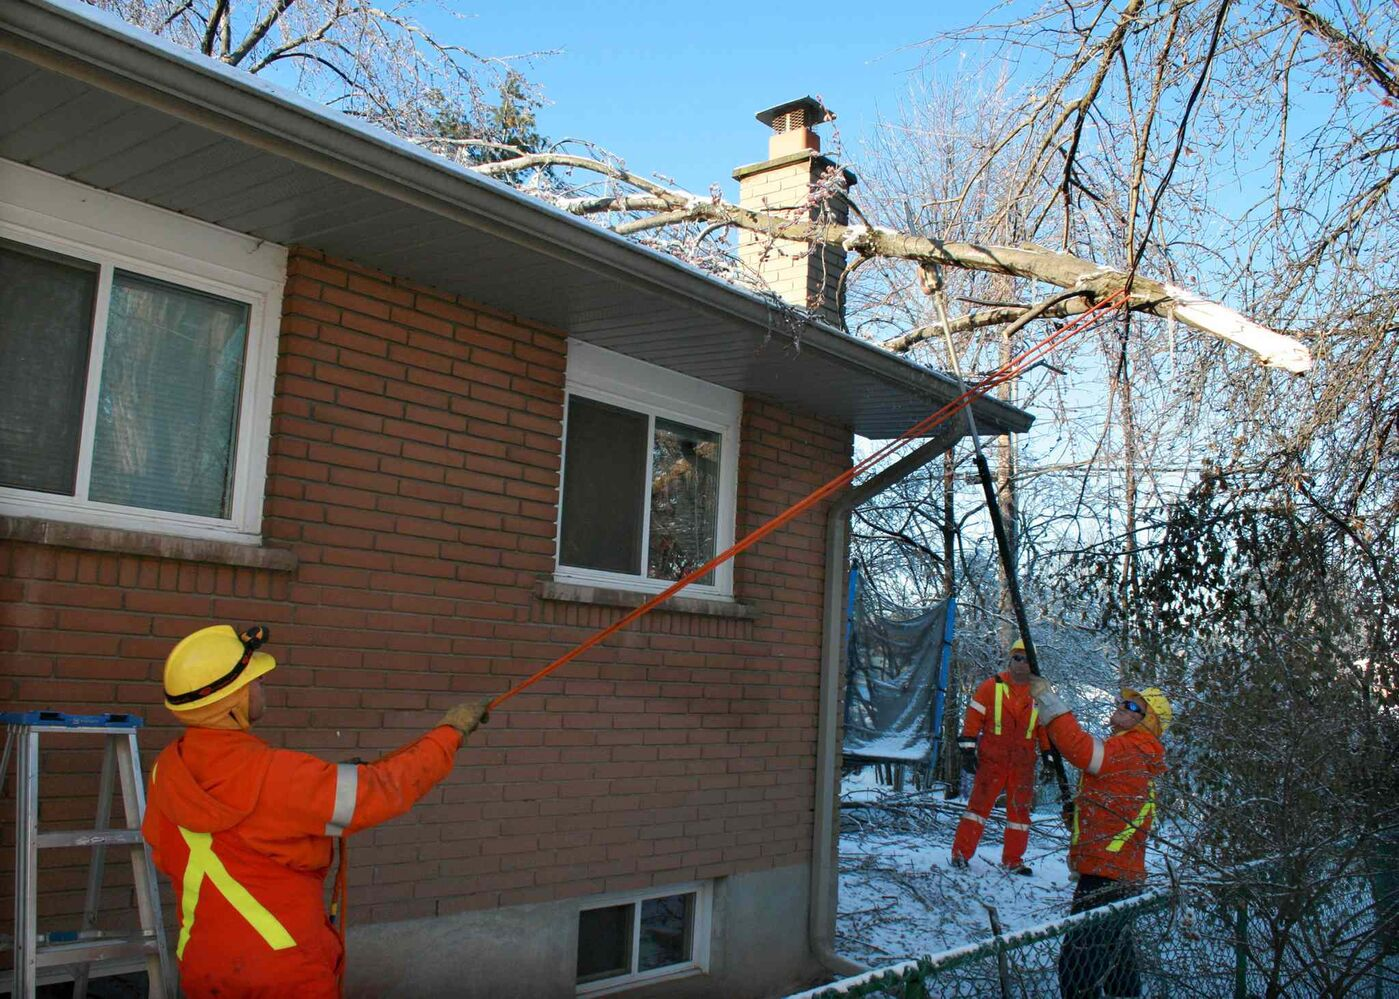 A hydro crew from London, Ont. works to remove fallen branches from a power line at a house in Oakville, Ont., Tuesday.